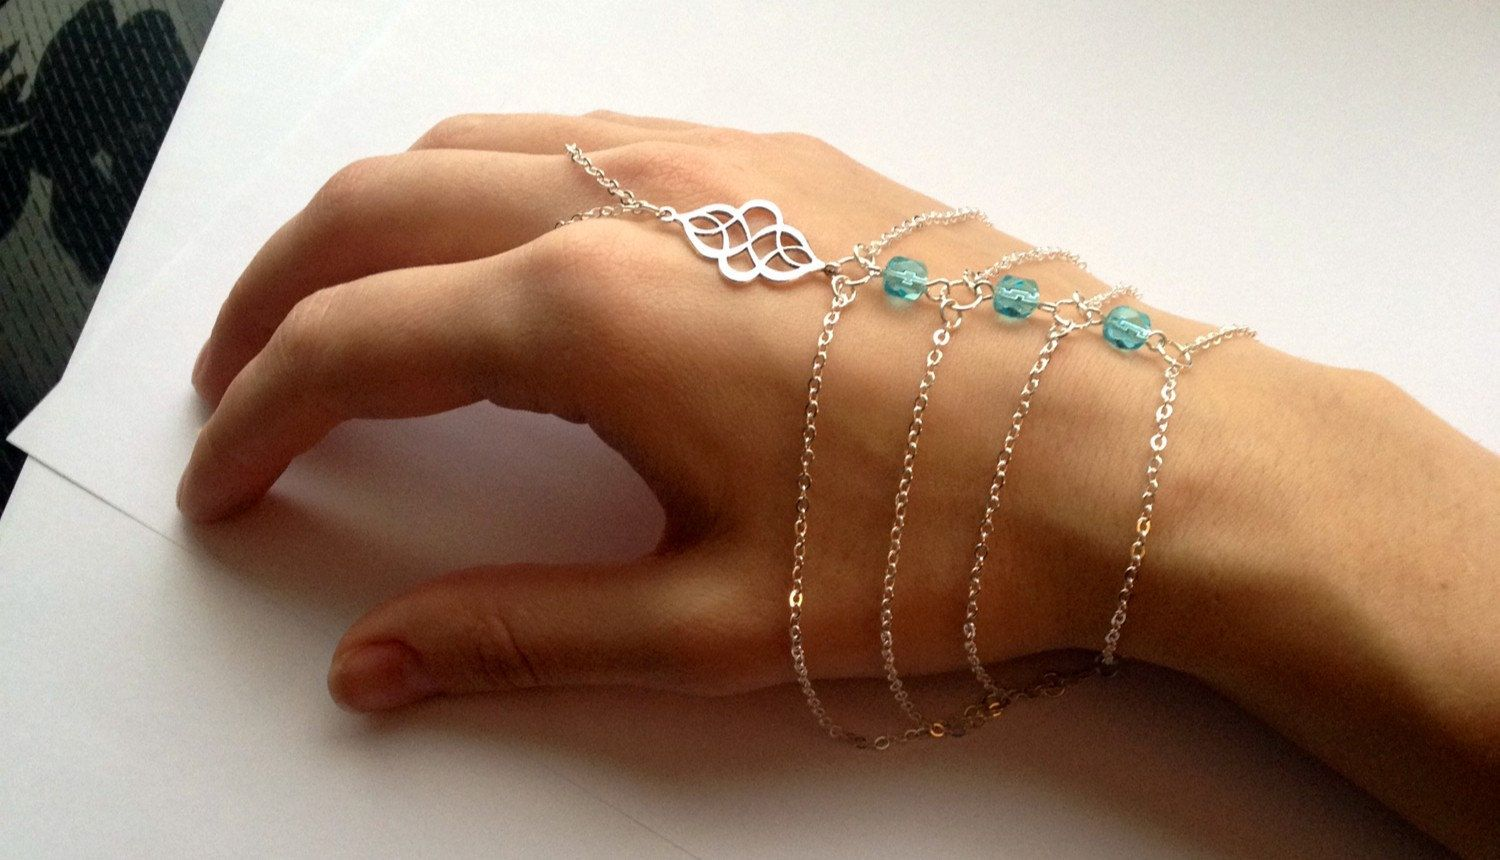 Slave Boho hand jewelry forecast to wear in autumn in 2019